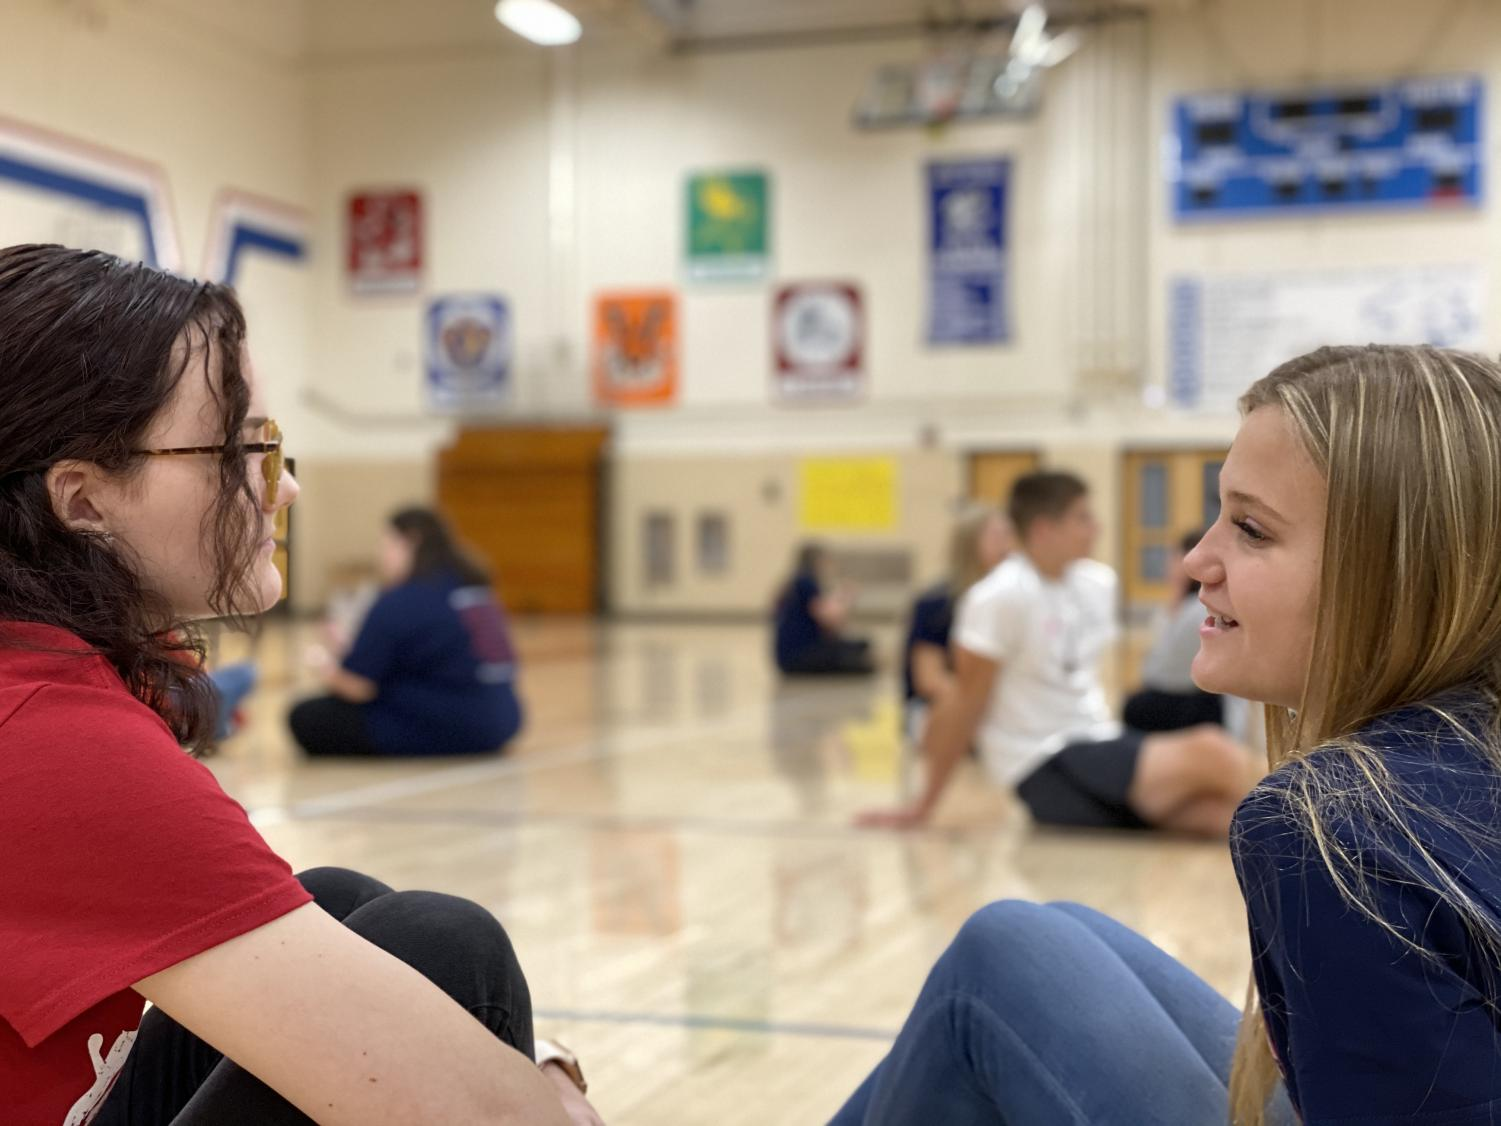 Link Crew conference brings groups together